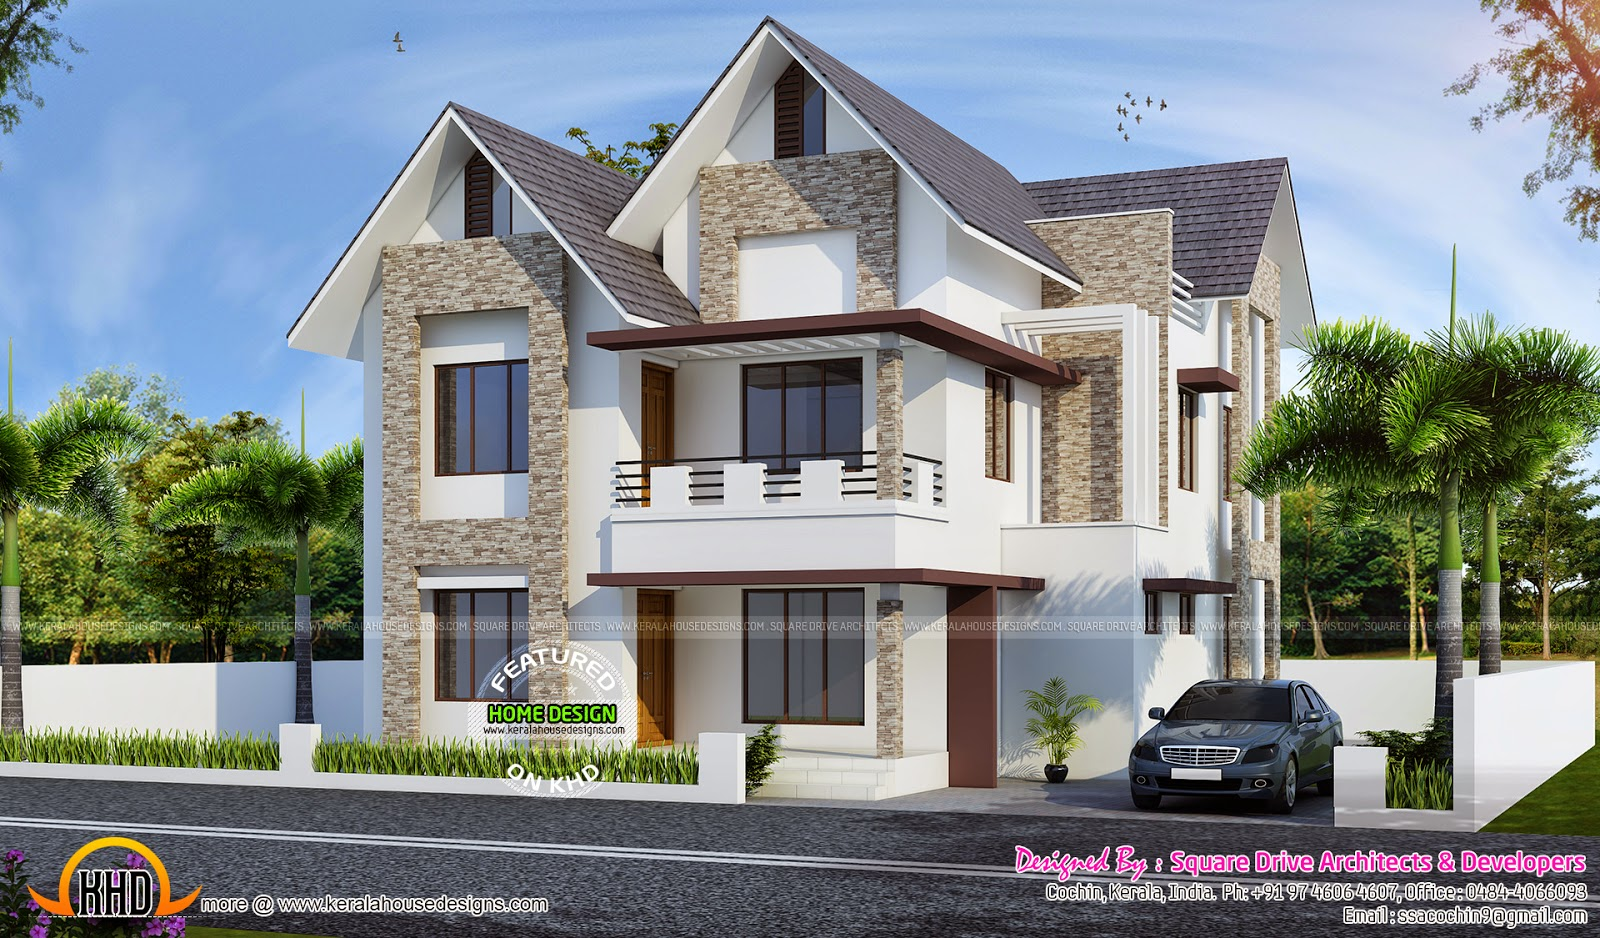 European style sloping roof house kerala home design and for European style house plans